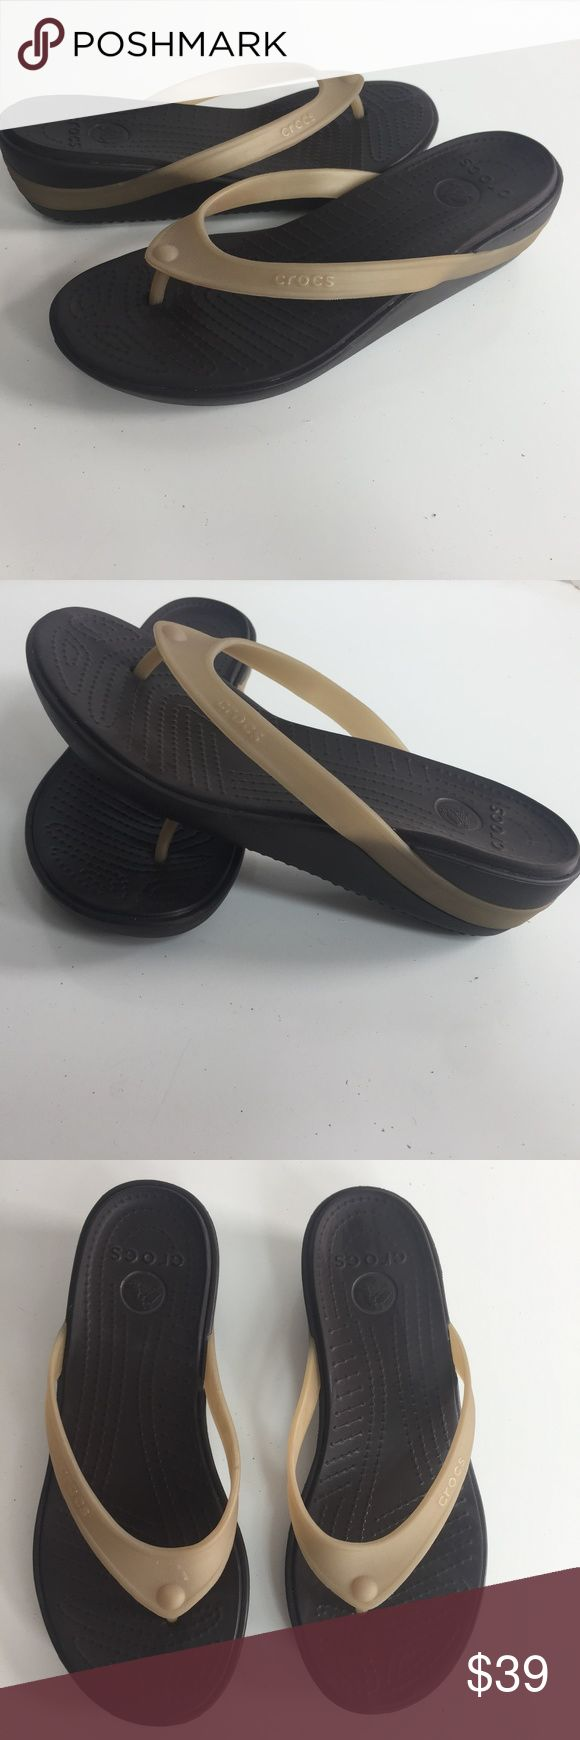 """Crocs Shoes Thong Flip Flop Sandals Black Wedge Crocs Shoes Womens Size 7 Thong Flip Flop Sandals Black Brown Wedge Beach Pool   A0314ktM10  Item condition:Pre-owned """"gently worn like new"""" Crocs Shoes Sandals"""